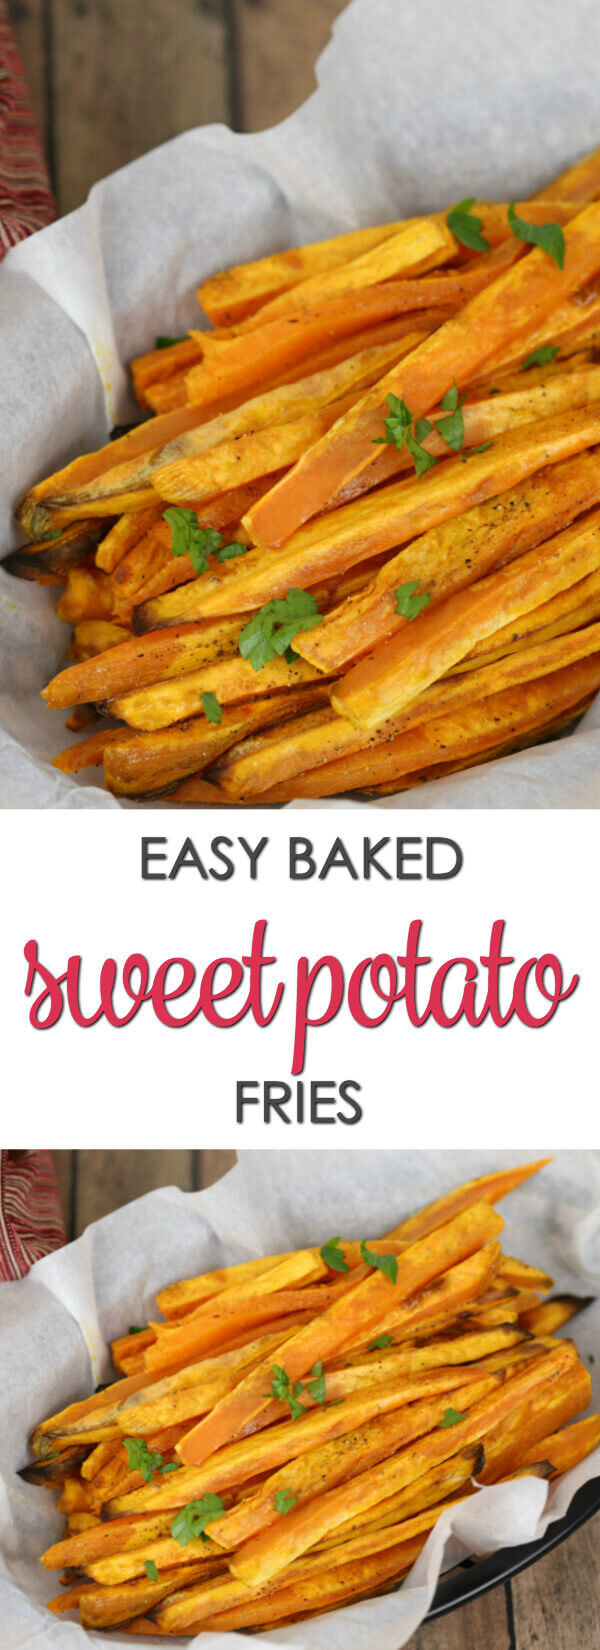 These Sweet Potato Baked Fries are a quick and easy easy side dish that can be made in the oven